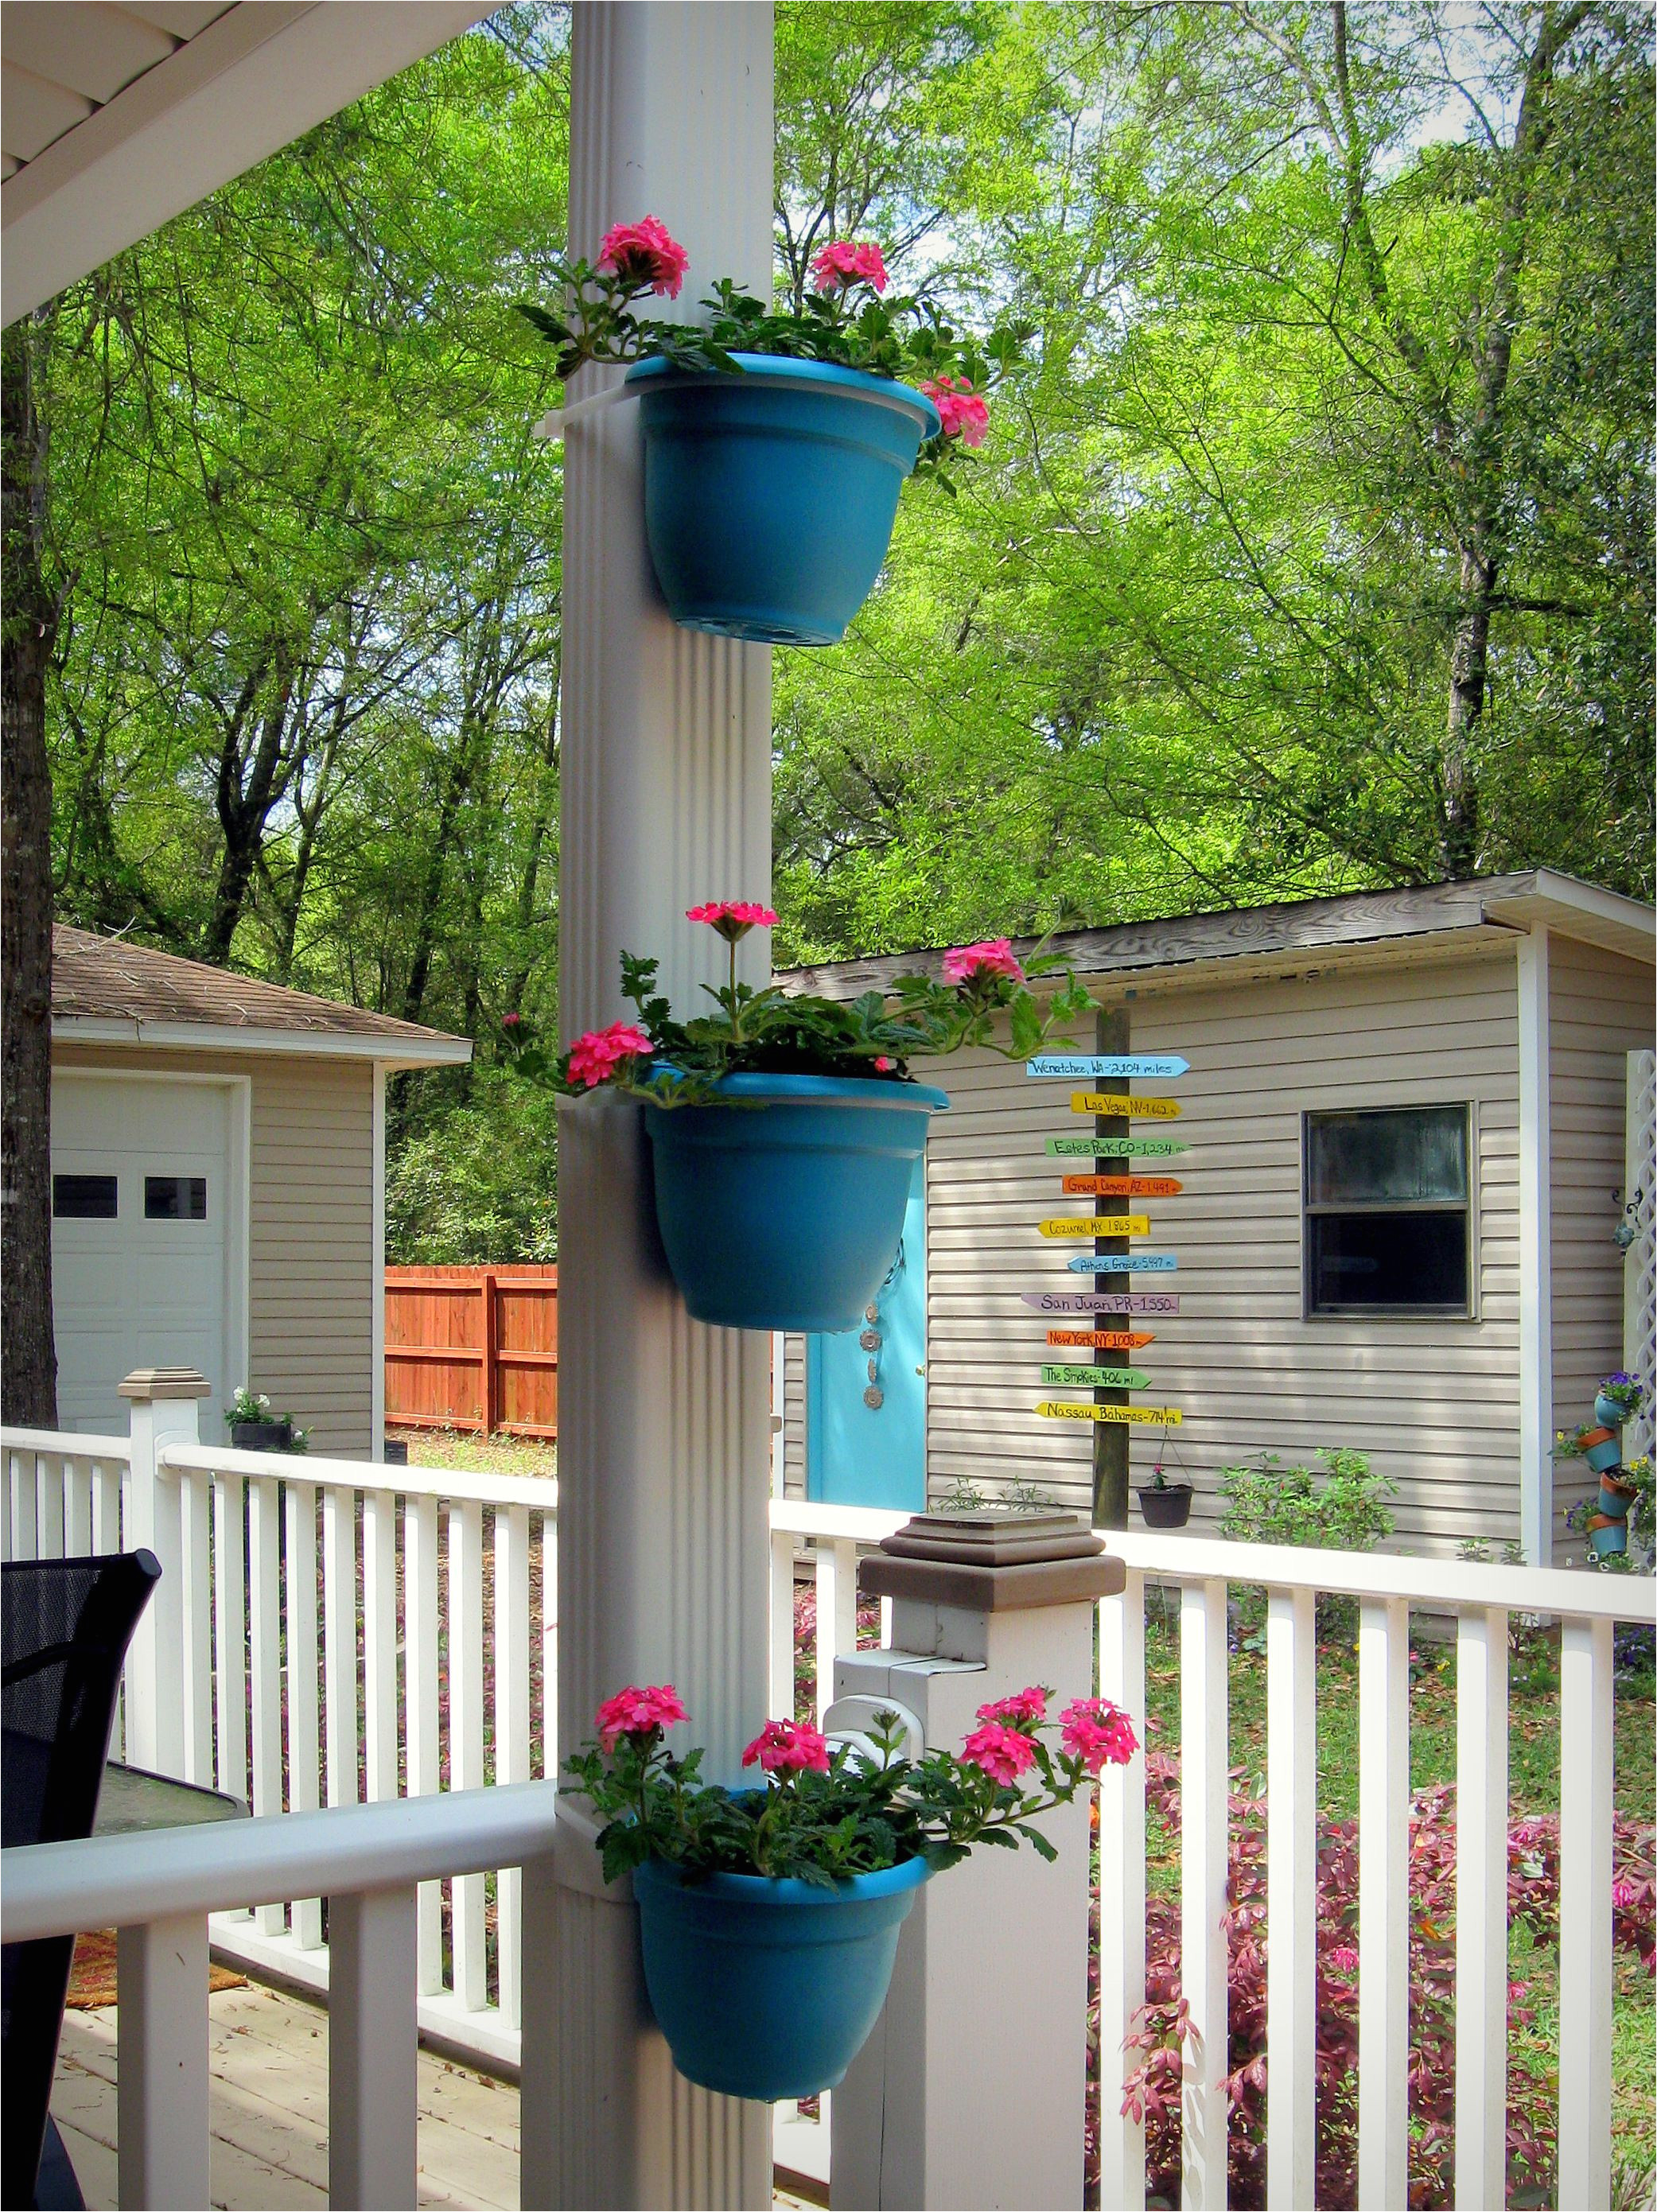 garden state gutter cleaning lovely drain pipe dress up use rain gutter drain pipes as vertical